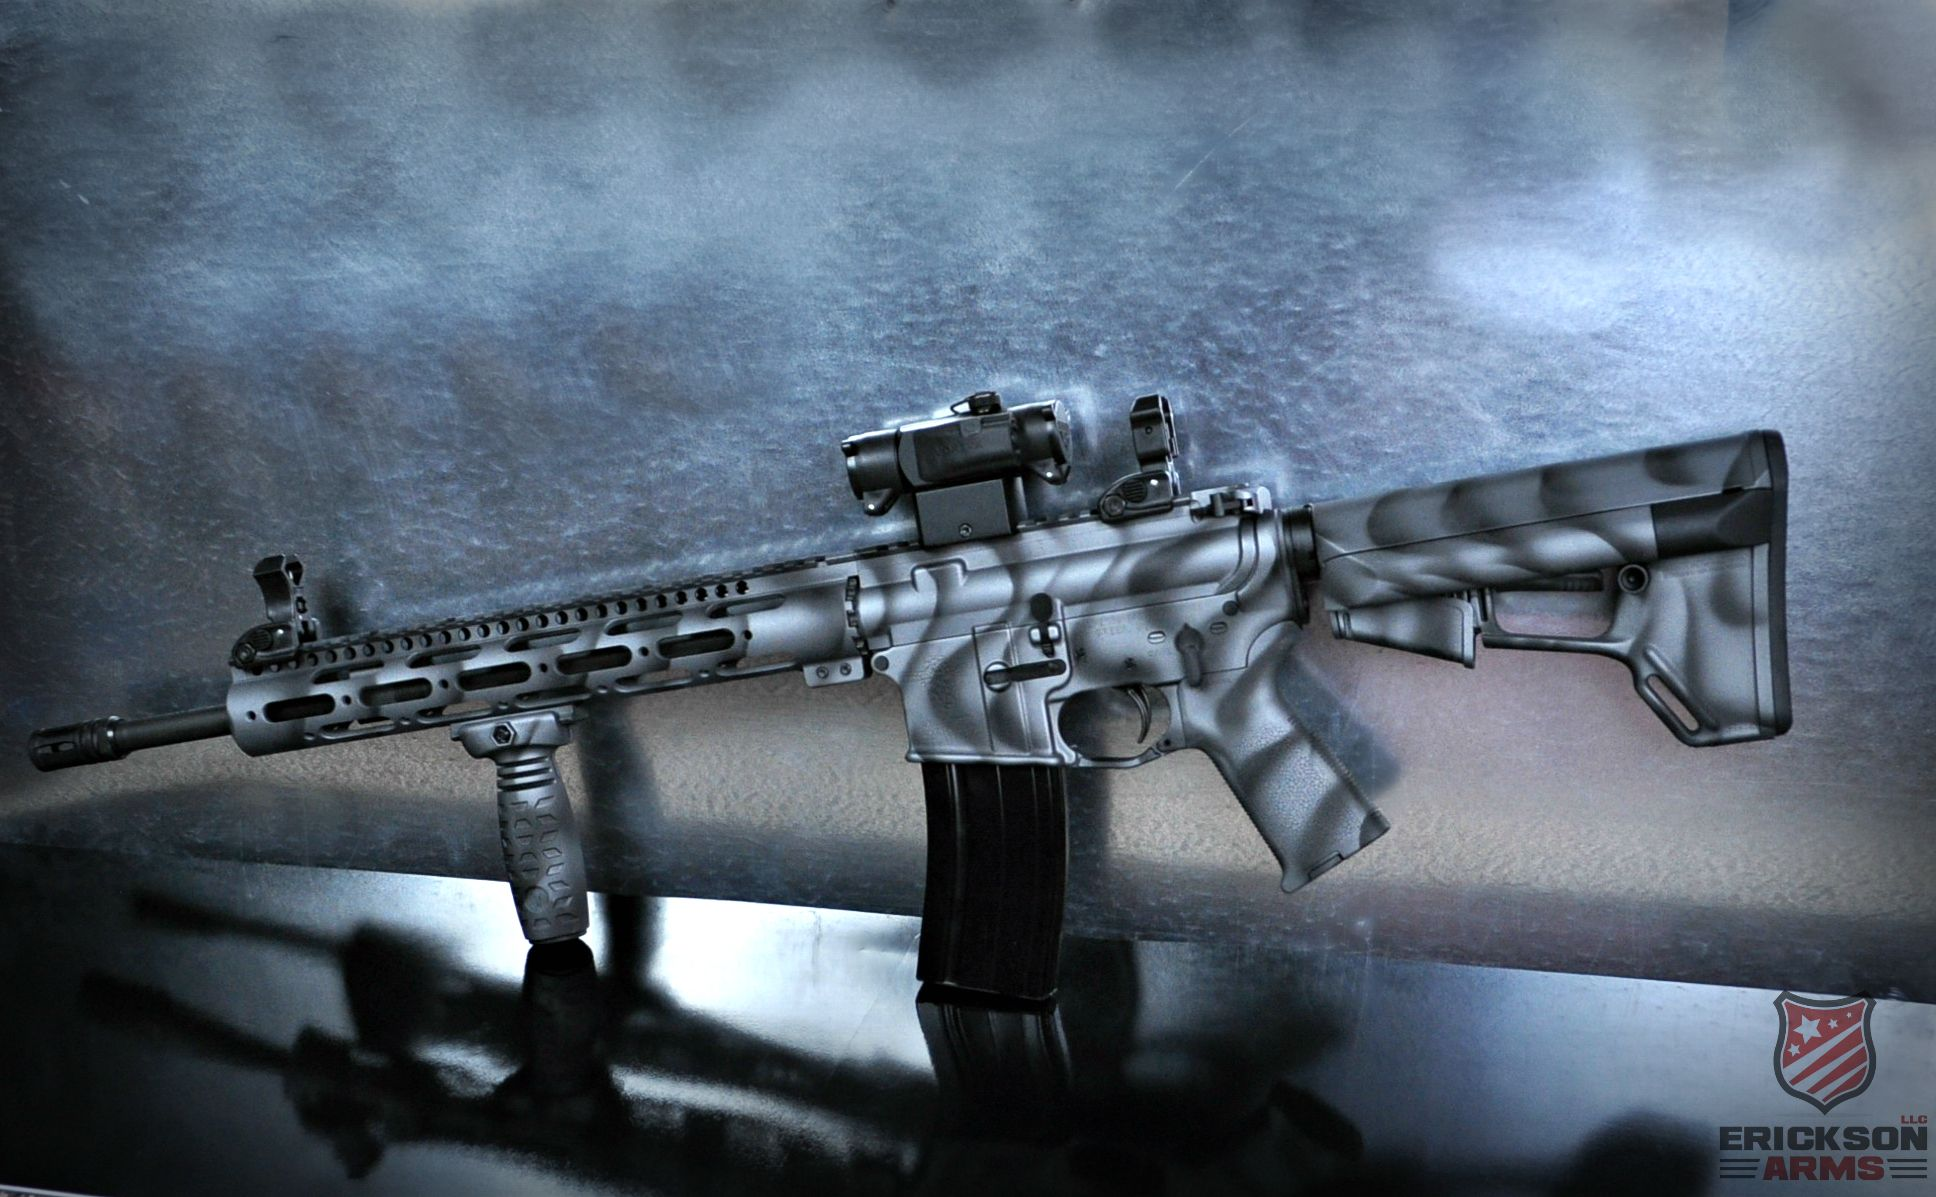 AR 15 In 2 Tone Freehand Pattern Using Tactical Grey And